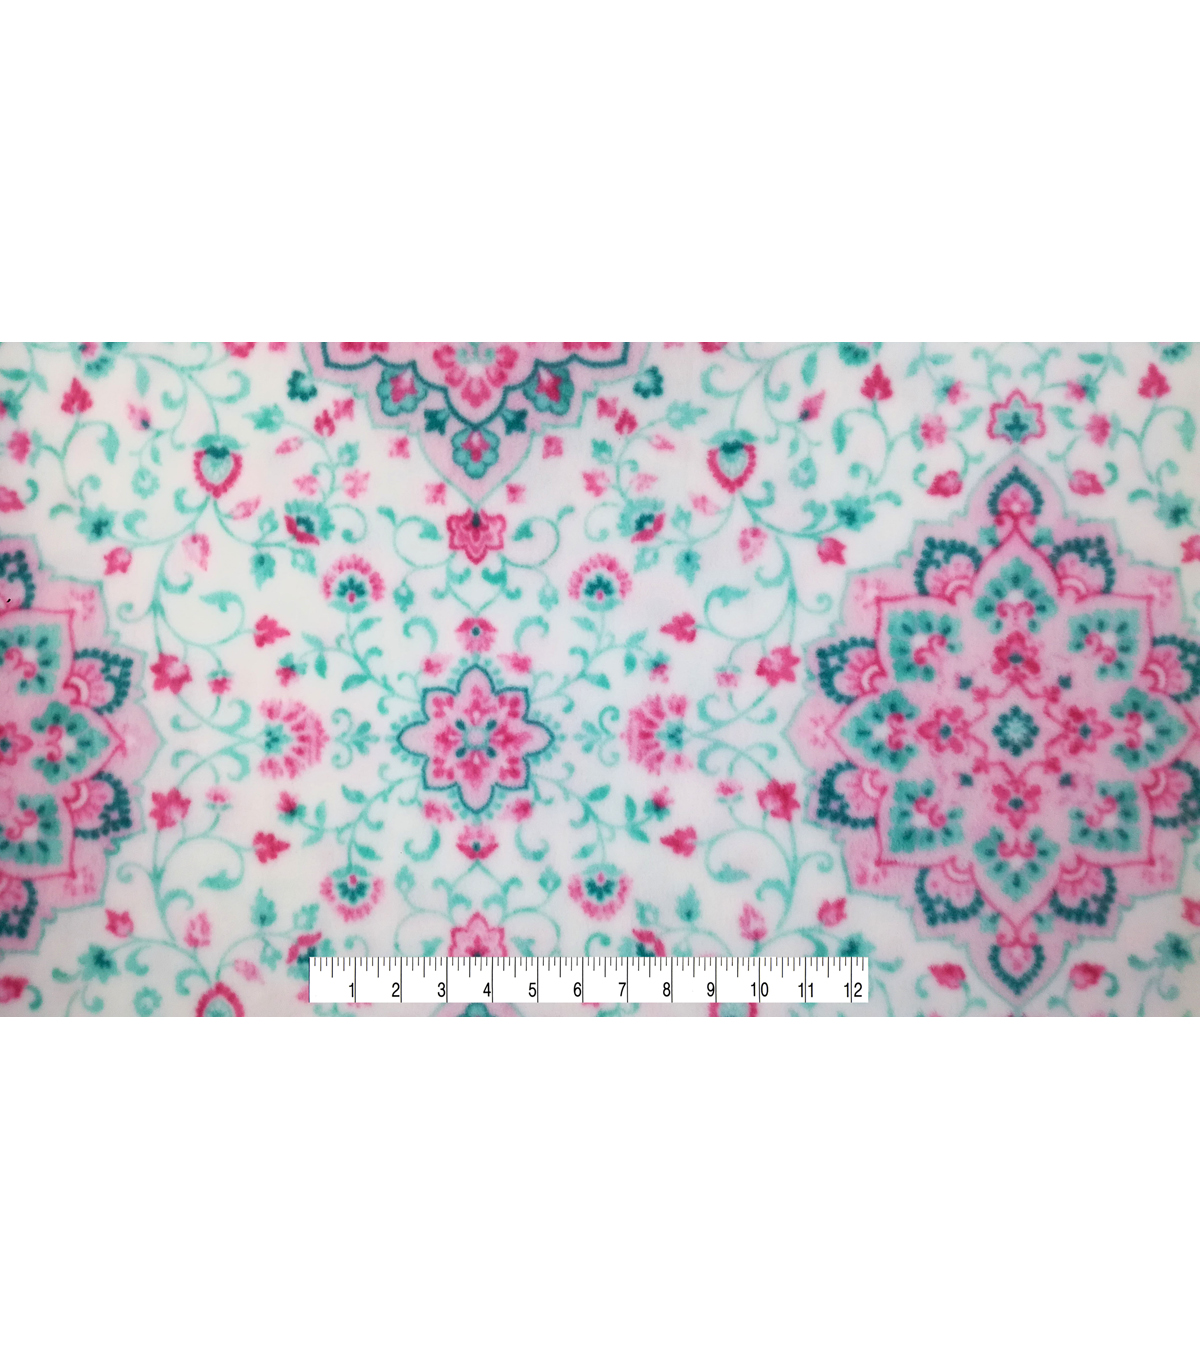 Anti-Pill Fleece Fabric -Dusty Pink Medallions